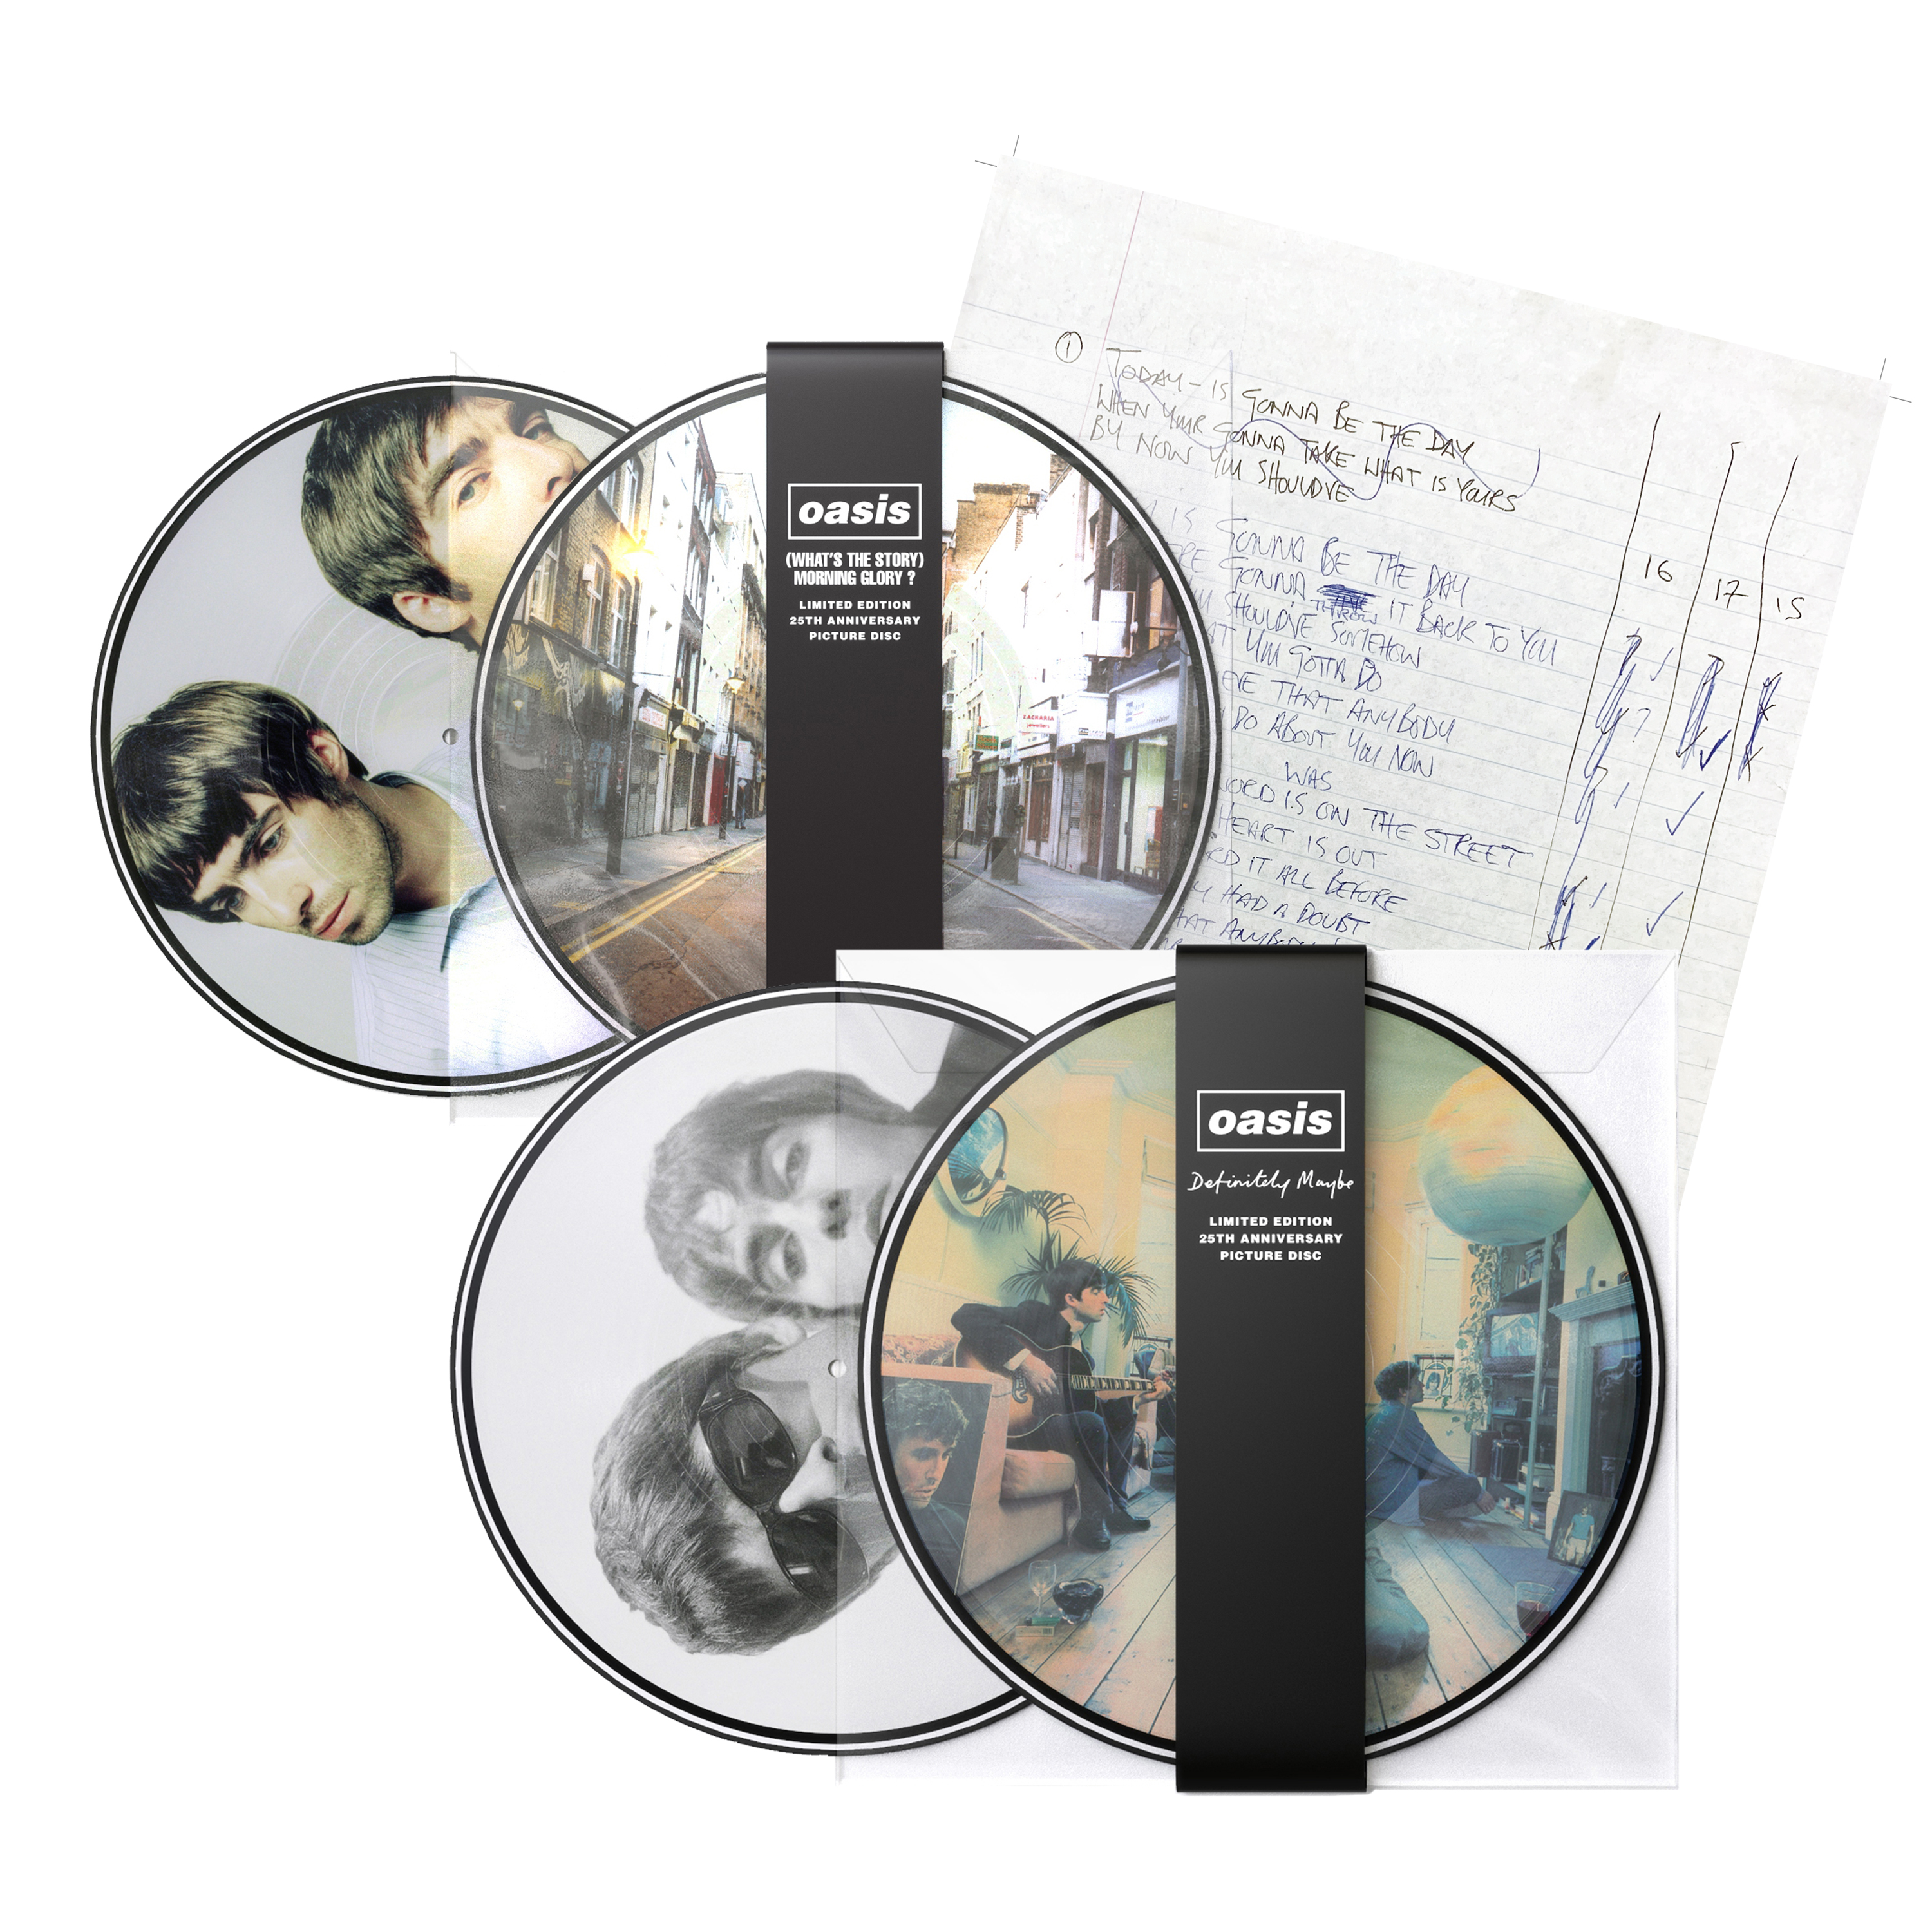 Buy Online Oasis - Picture Disc Vinyl Bundle